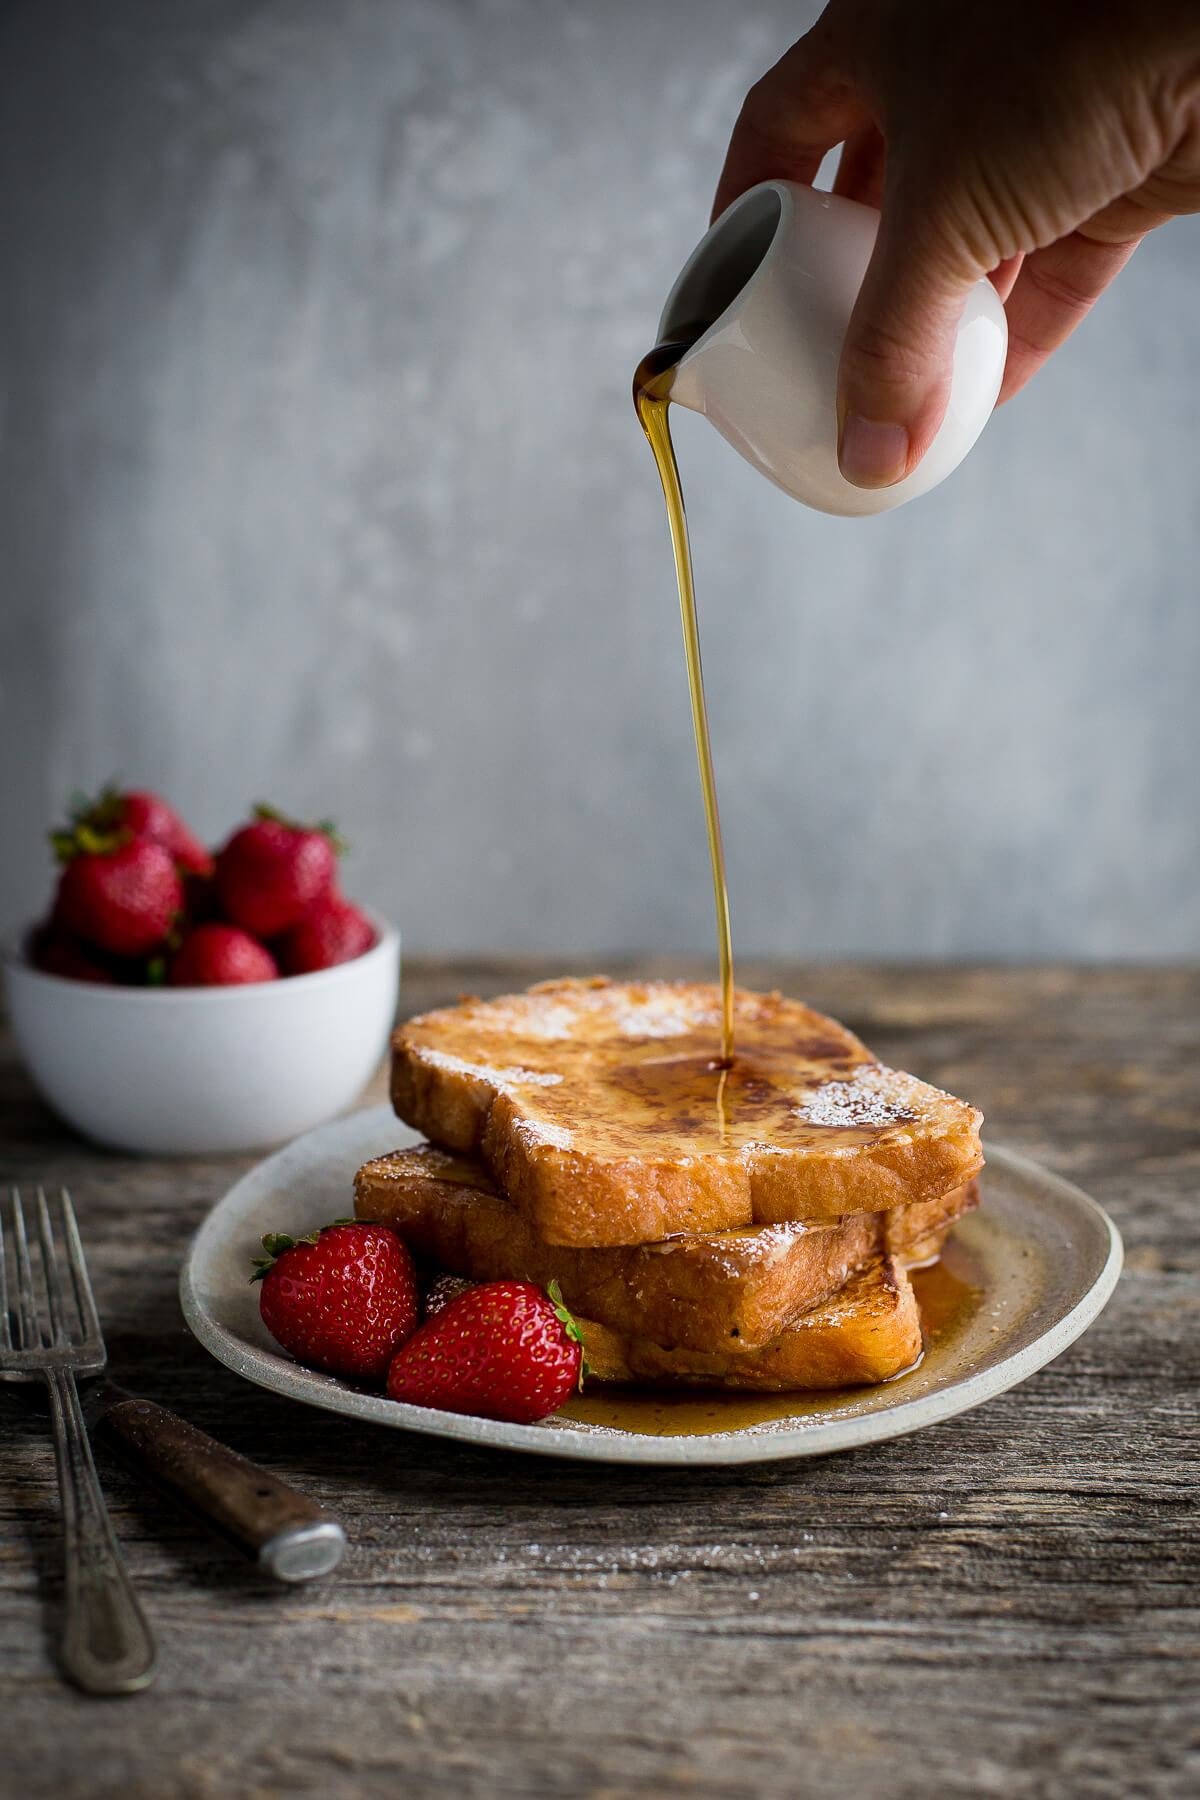 Syrup being poured on a stack of brioche french toast.